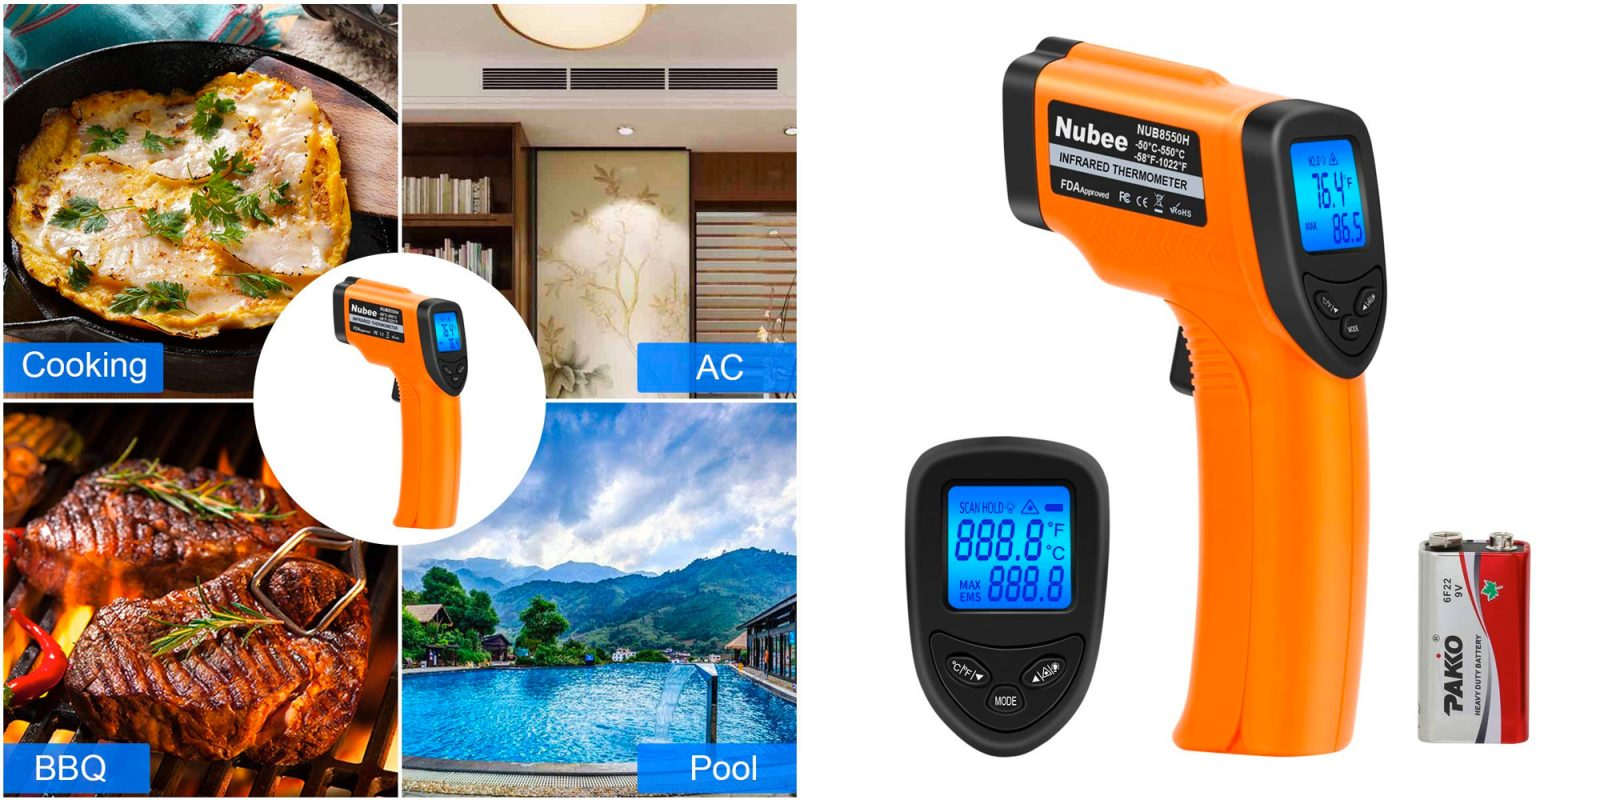 Measure temperatures up to 1,022F with this $14 digital infrared thermometer